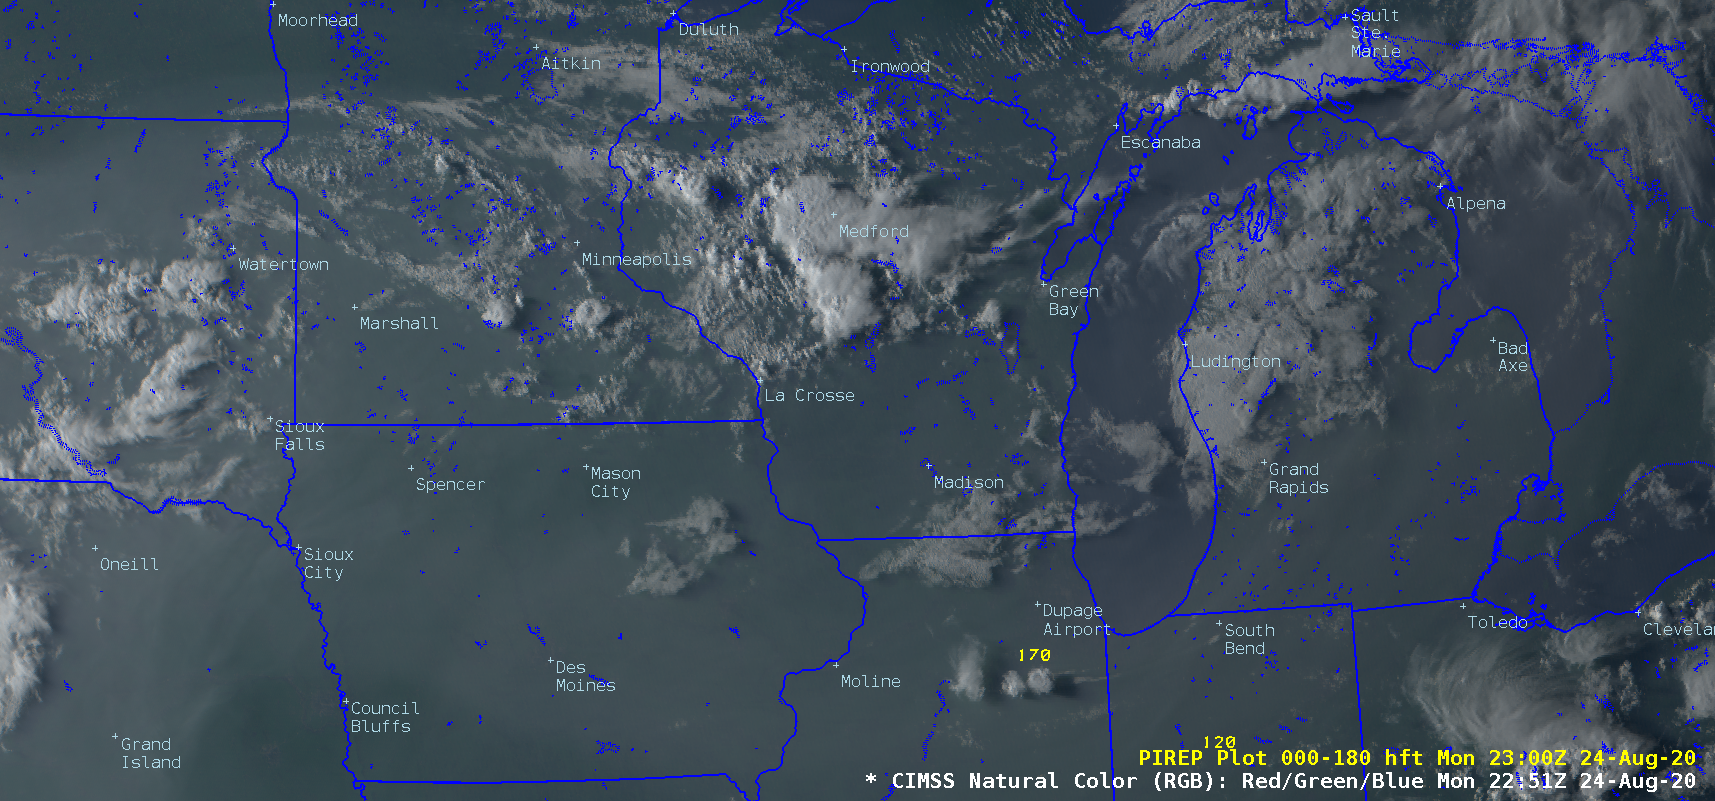 CIMSS Natural Color RGB images, with plots of Pilot Reports [click to play animation | MP4]